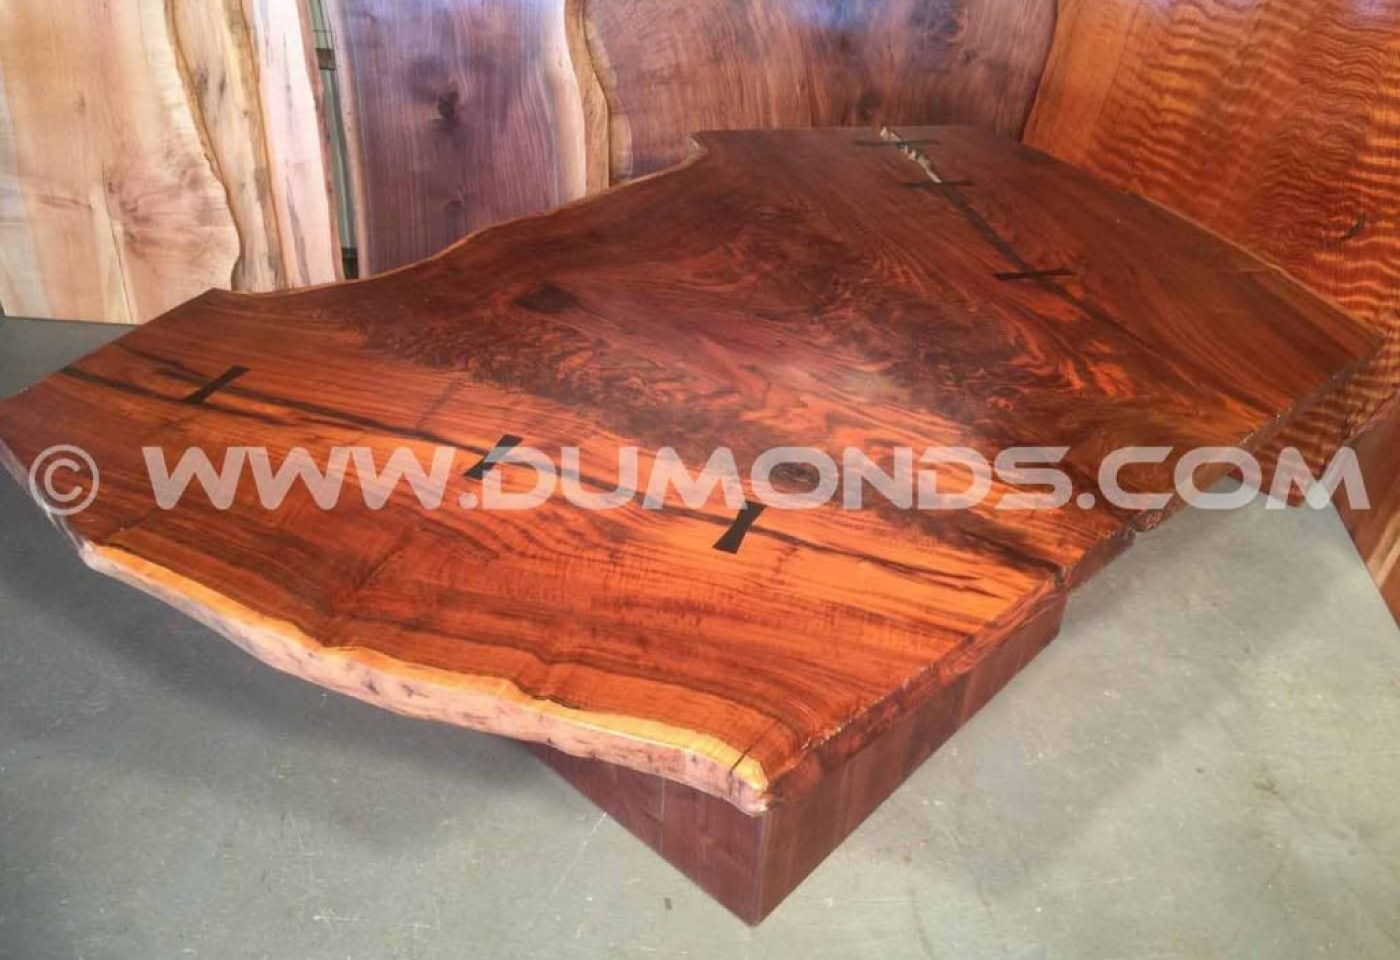 SALVAGED, RECYCLED CURLY WALNUT CROTCH WOOD